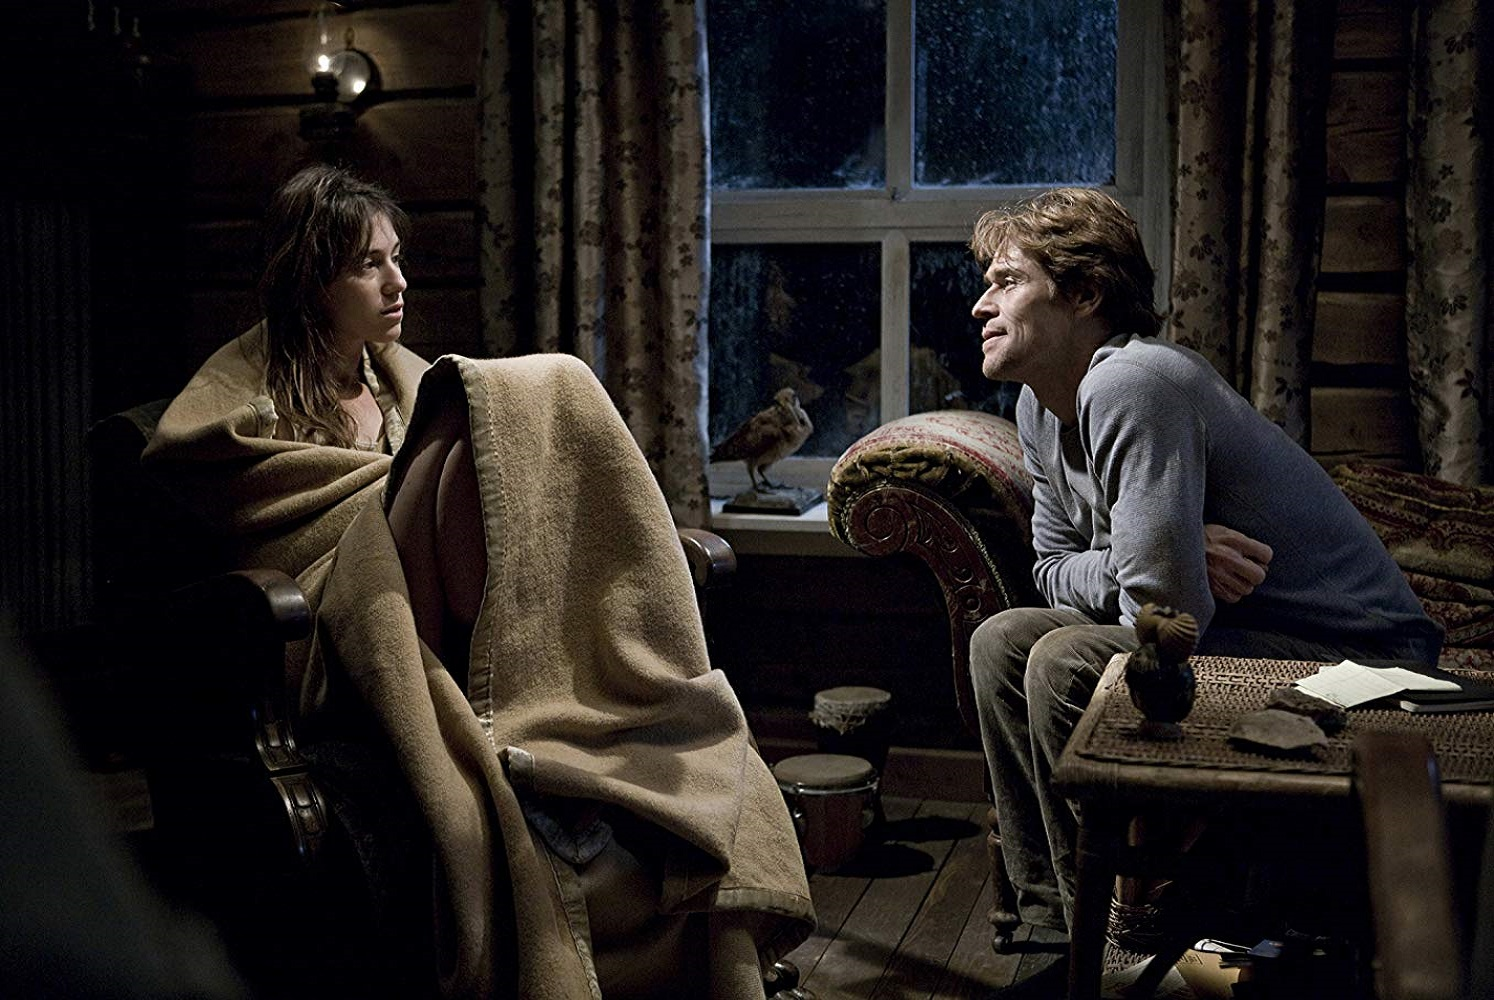 Willem Dafoe tries to console disturbed wife Charlotte Gainsbourg in Antichrist (2009)